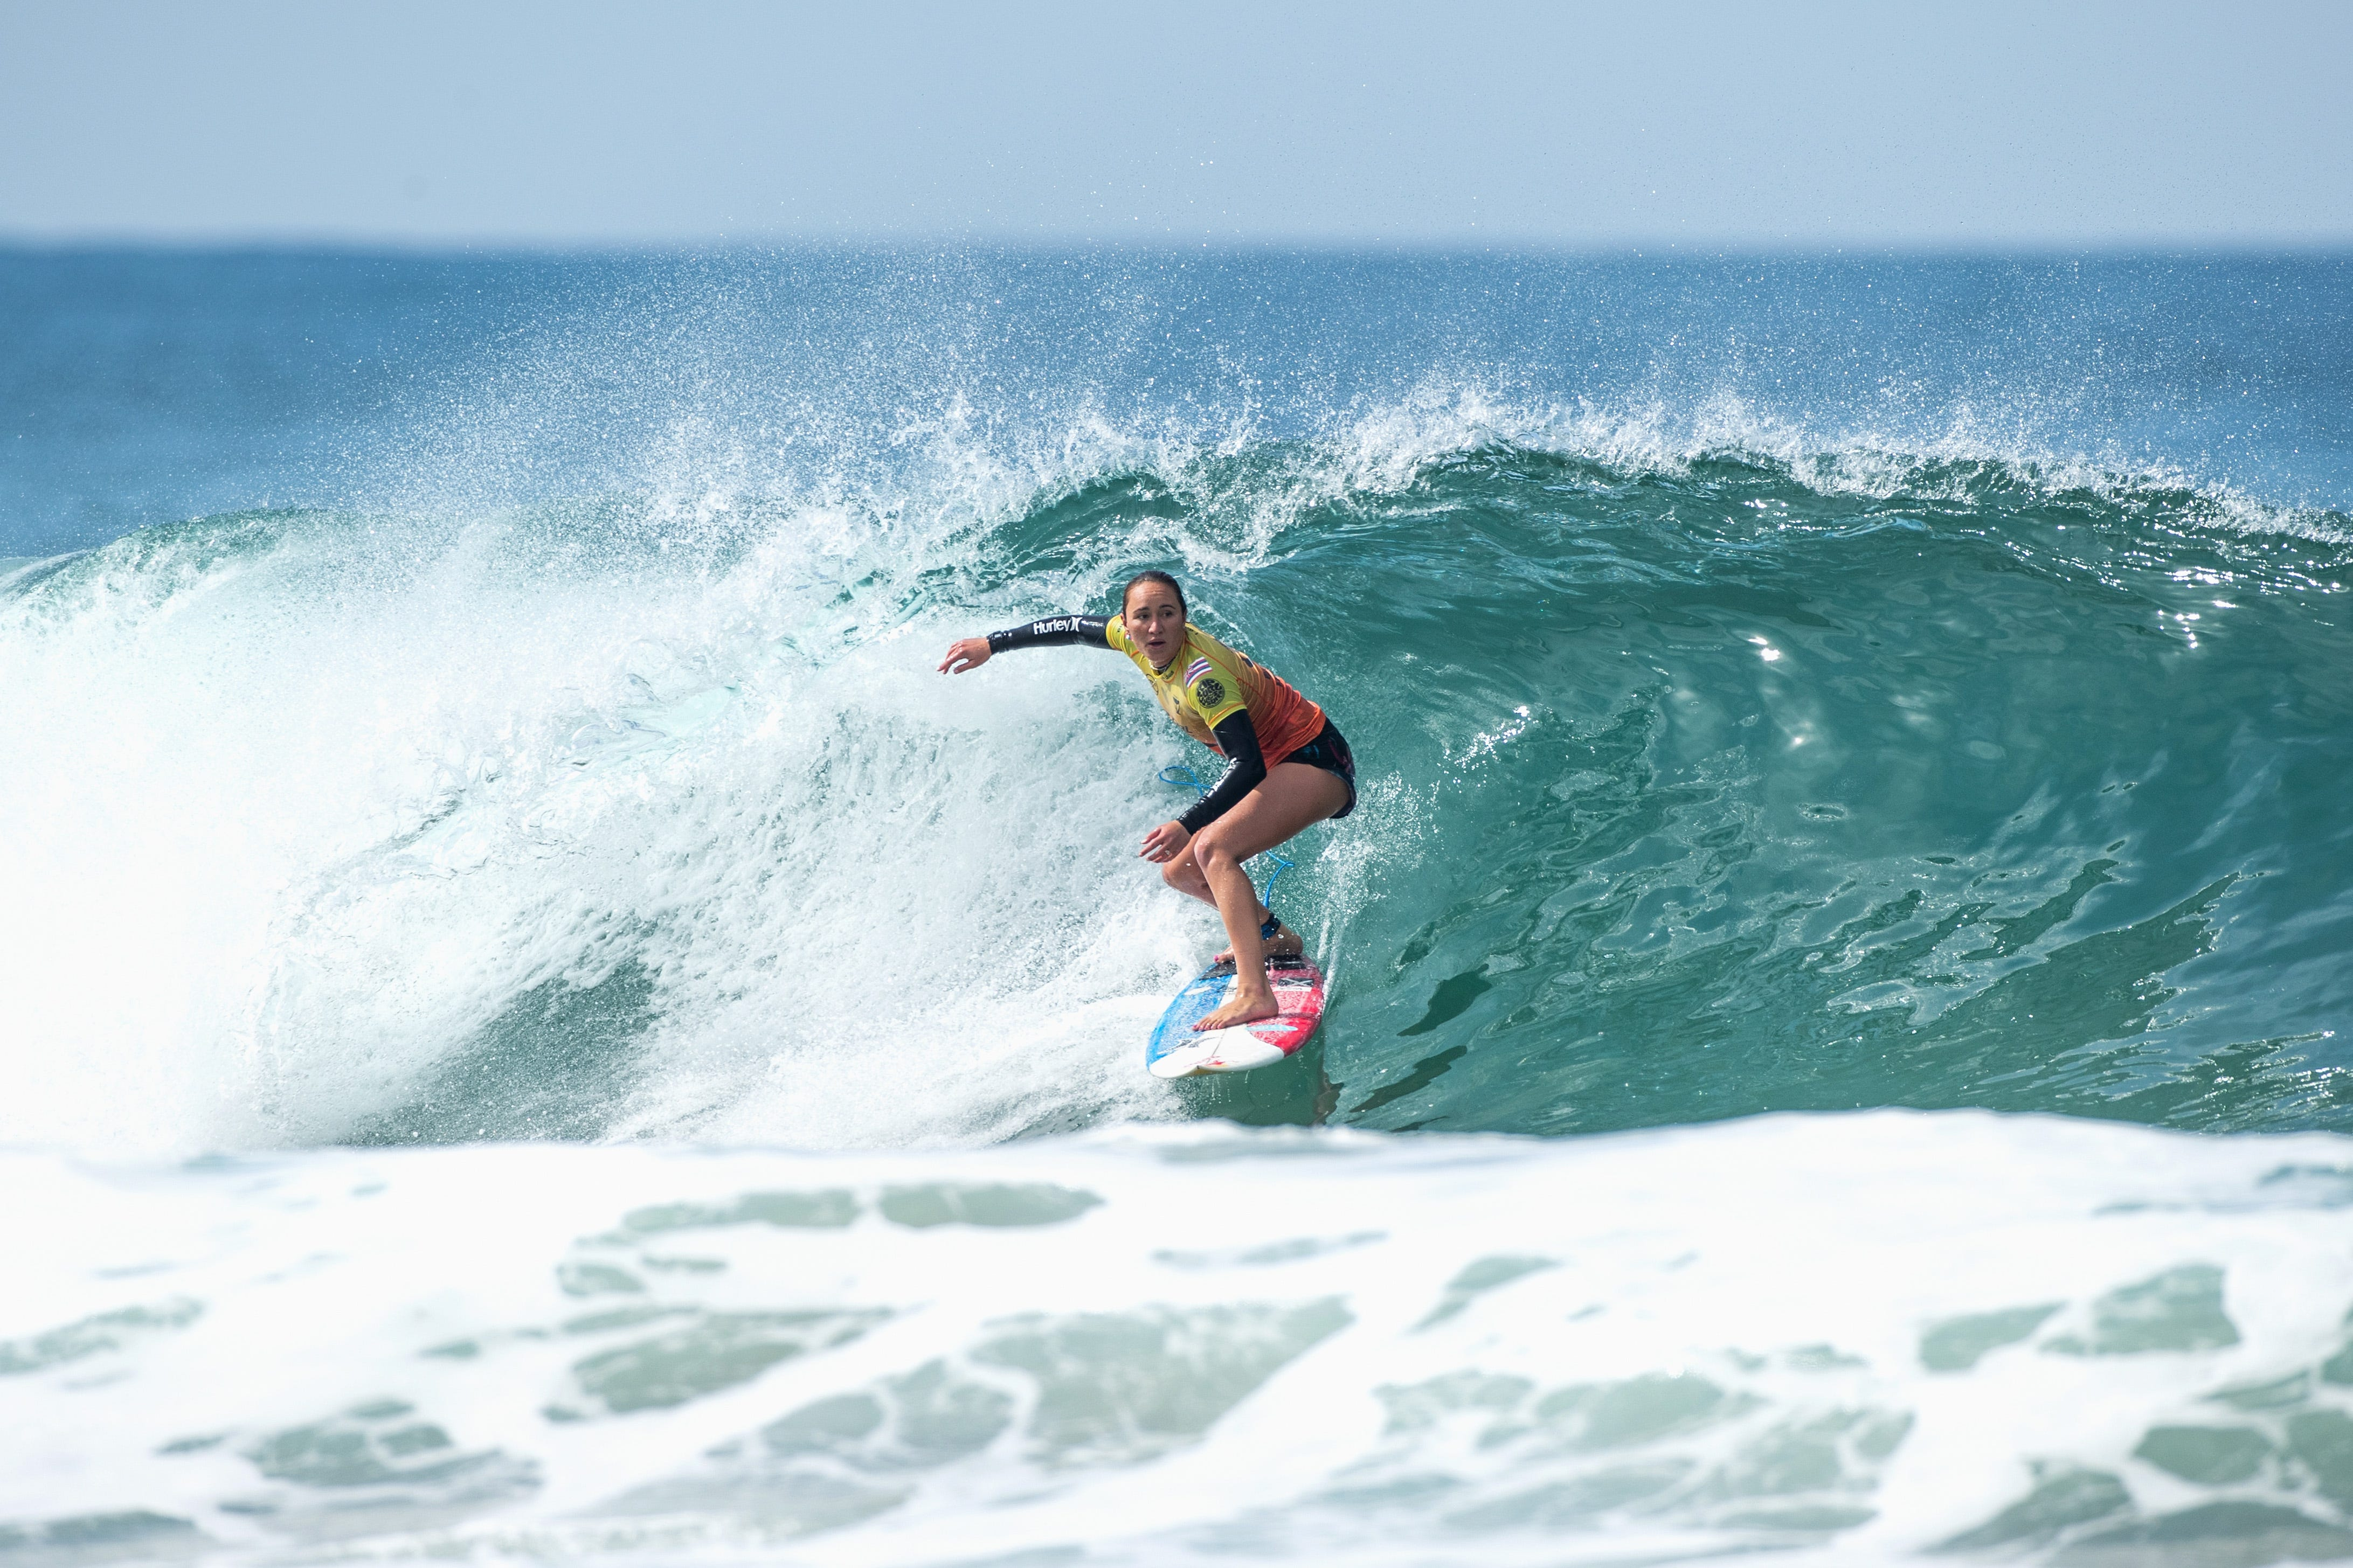 Carissa Moore shown competing in the semifinal of the Rip Curl Narrabeen Classic.